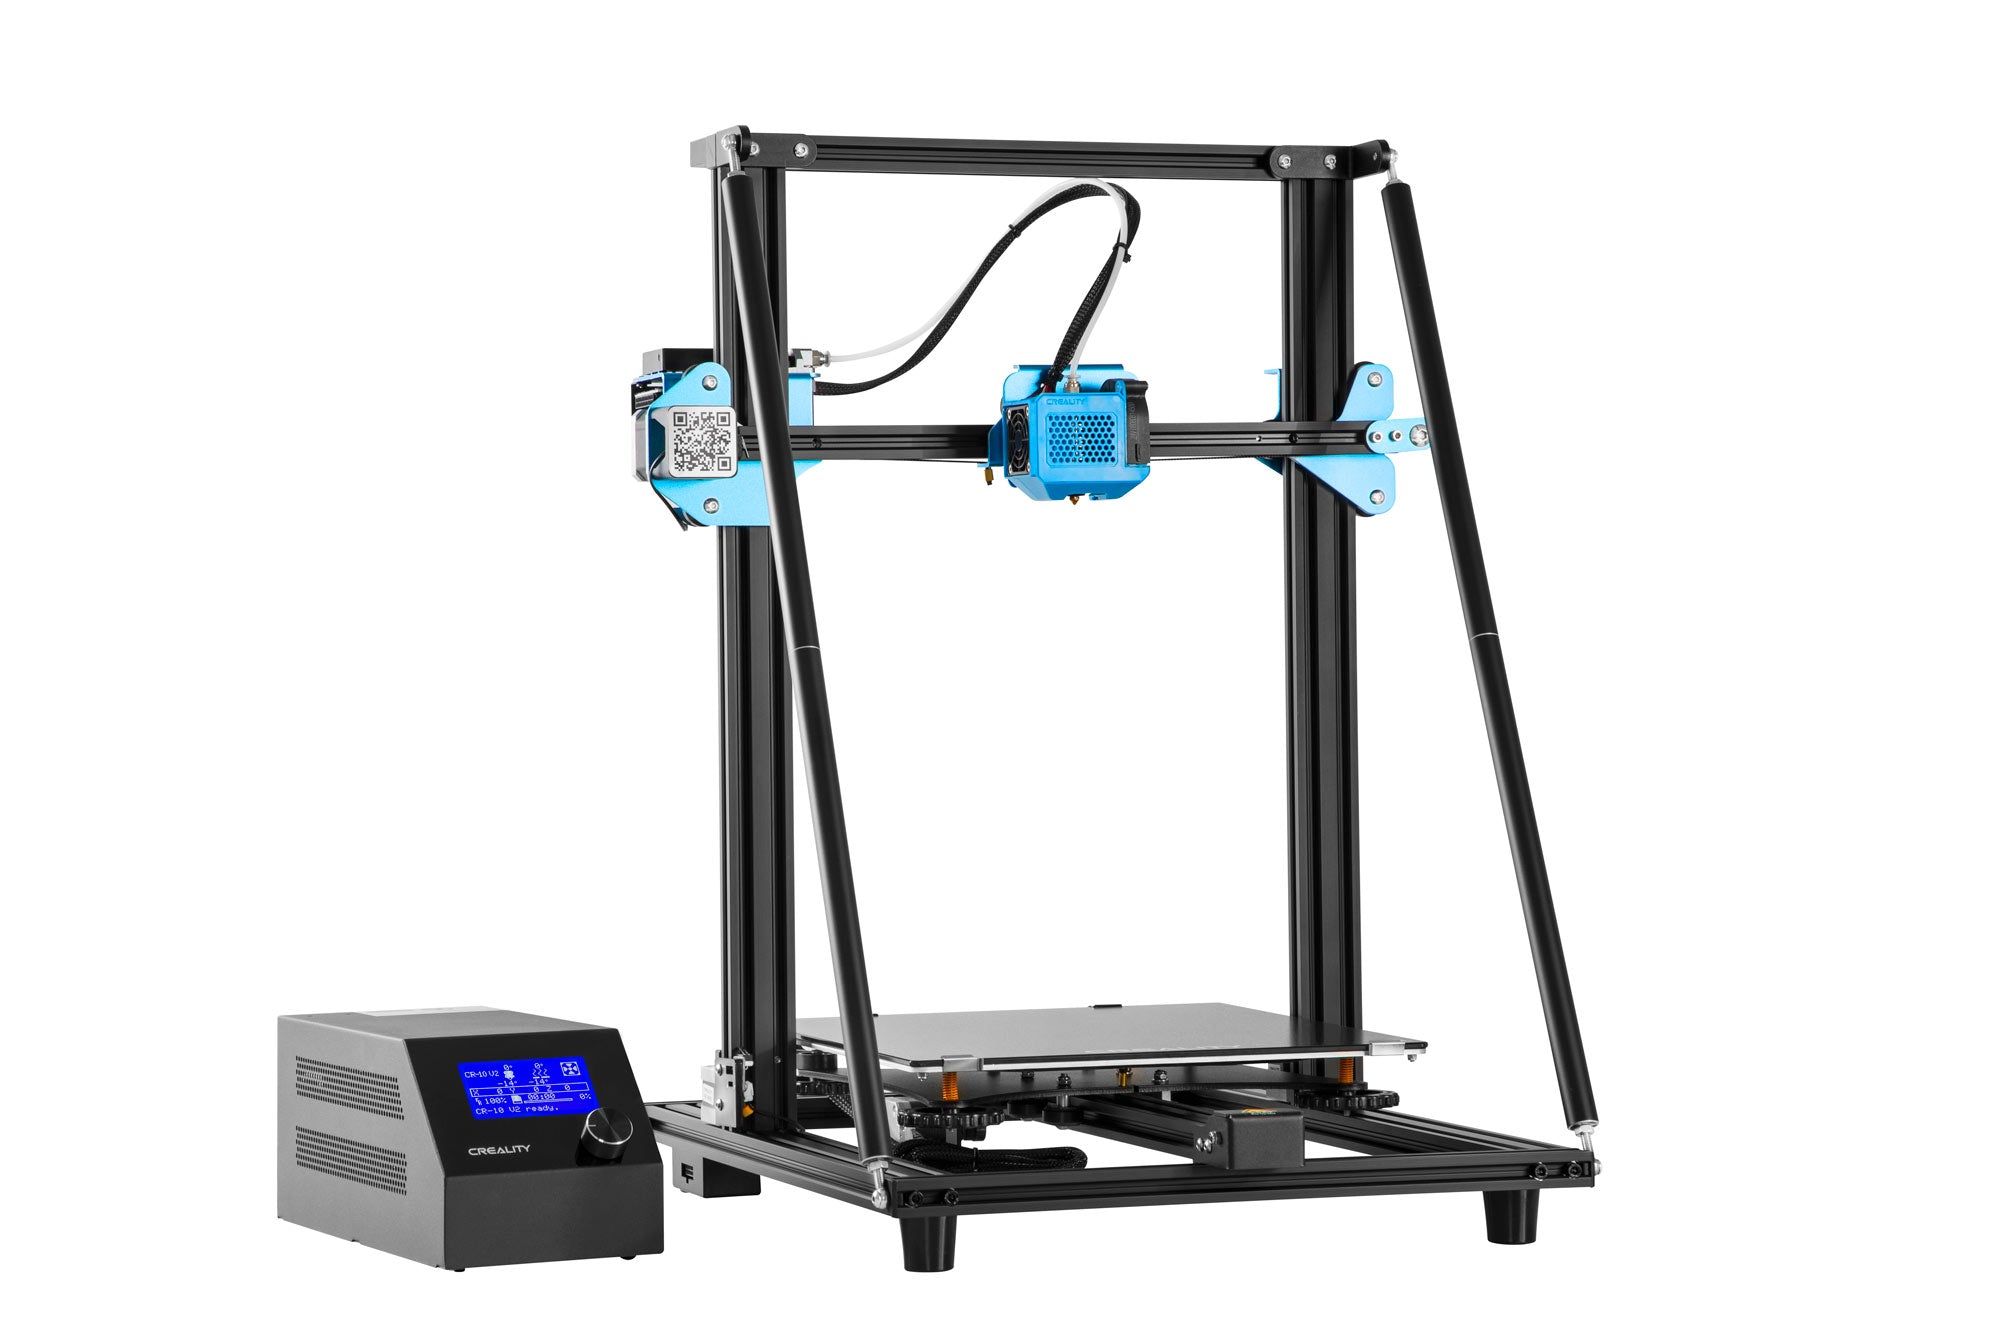 CREALITY CR-10 V2 Desktop 3D Printer